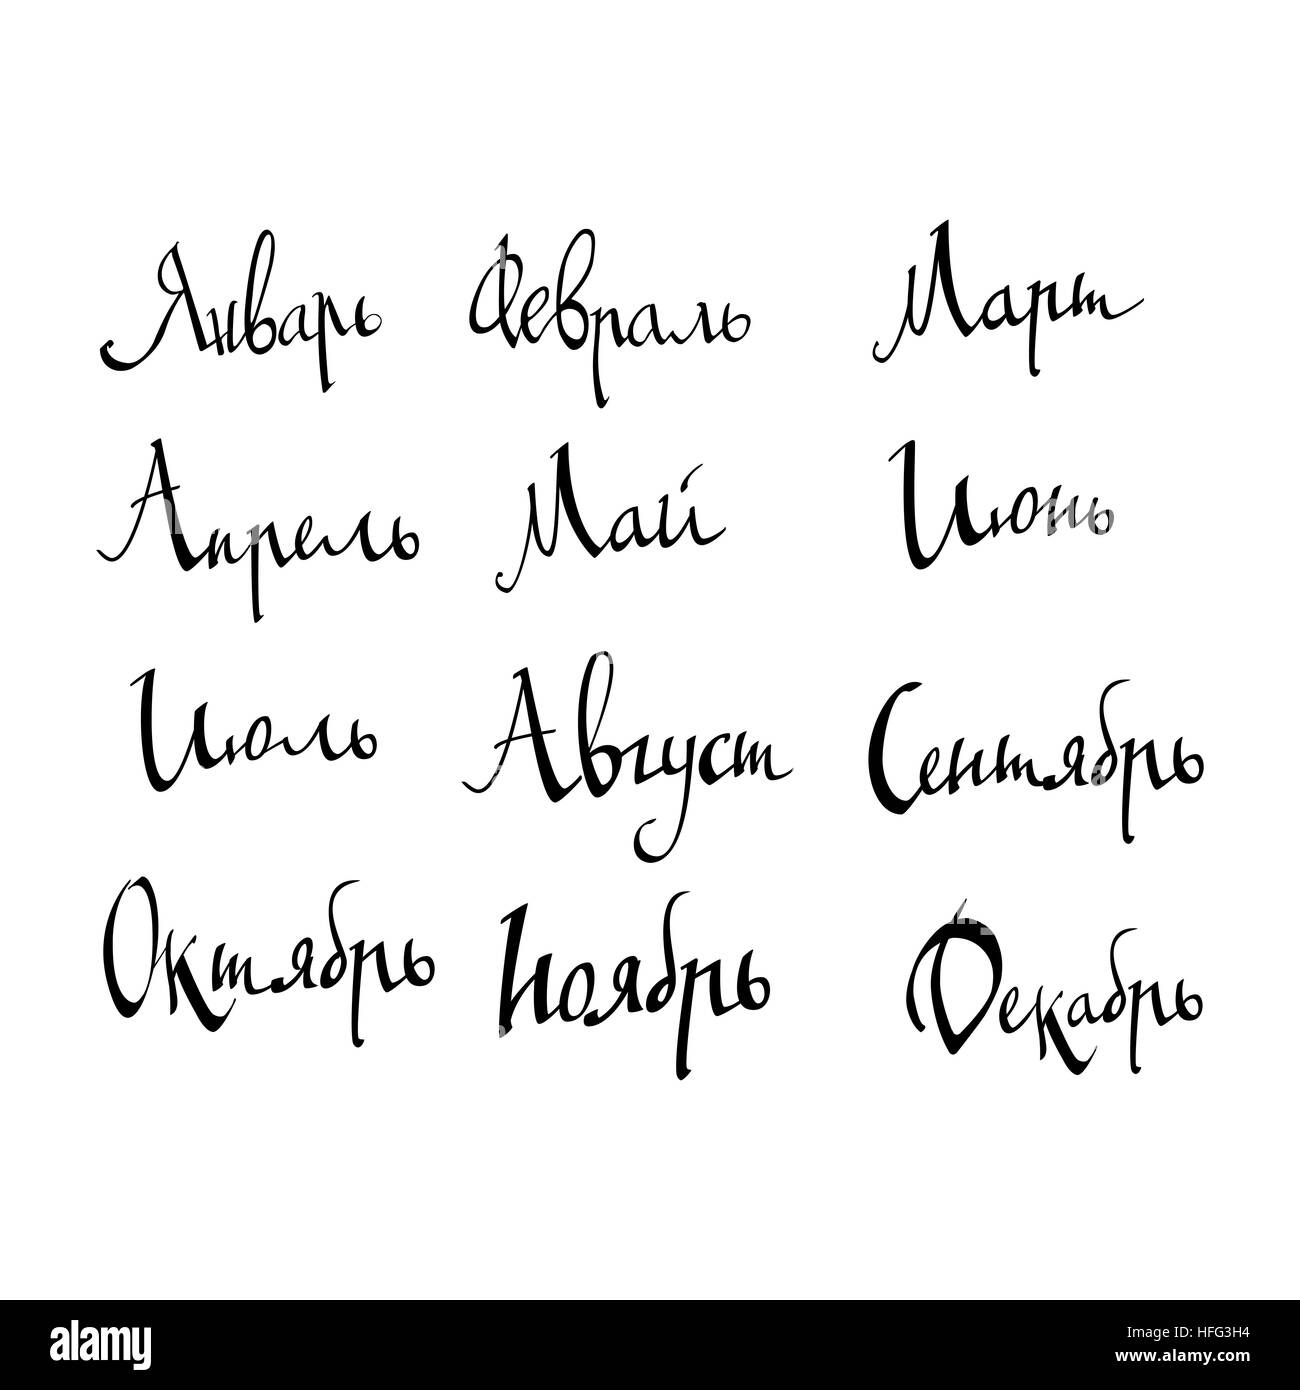 Cyrillic Month Set. Good For Calendar. Inscription In Russian. Handmade Brush Calligraphy On White Background. Cyrillic - Stock Image